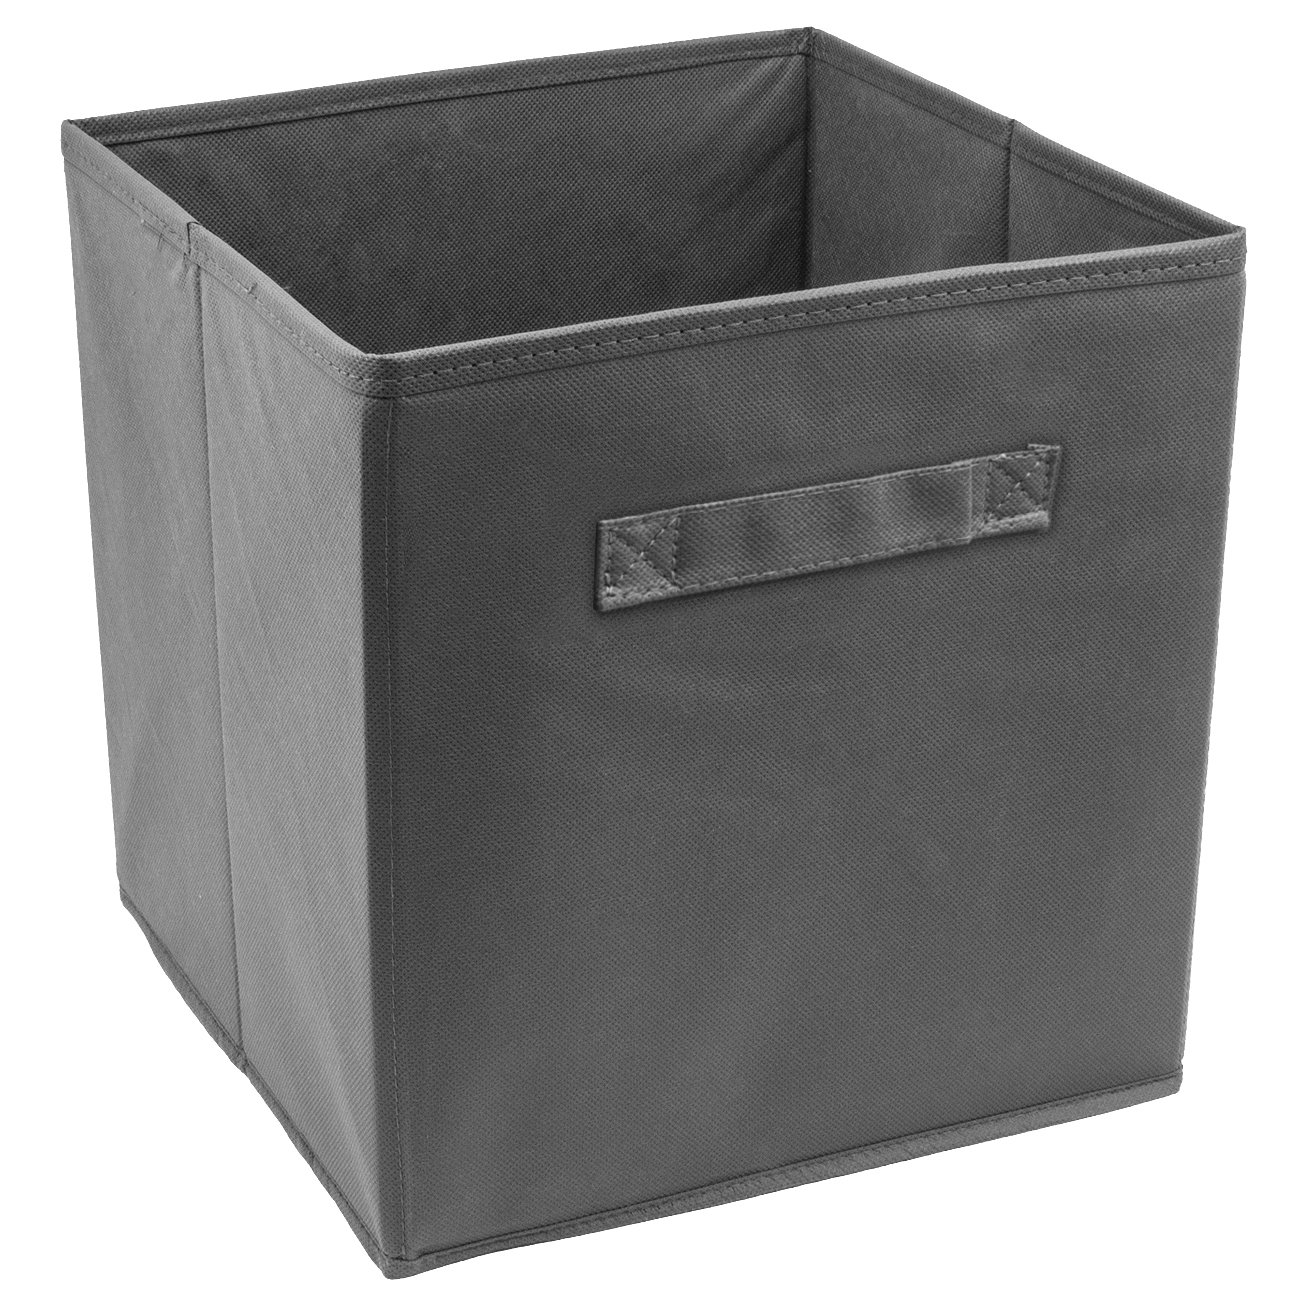 Sorbus Foldable Storage Cube Basket Bin (1 Pack, Grey)